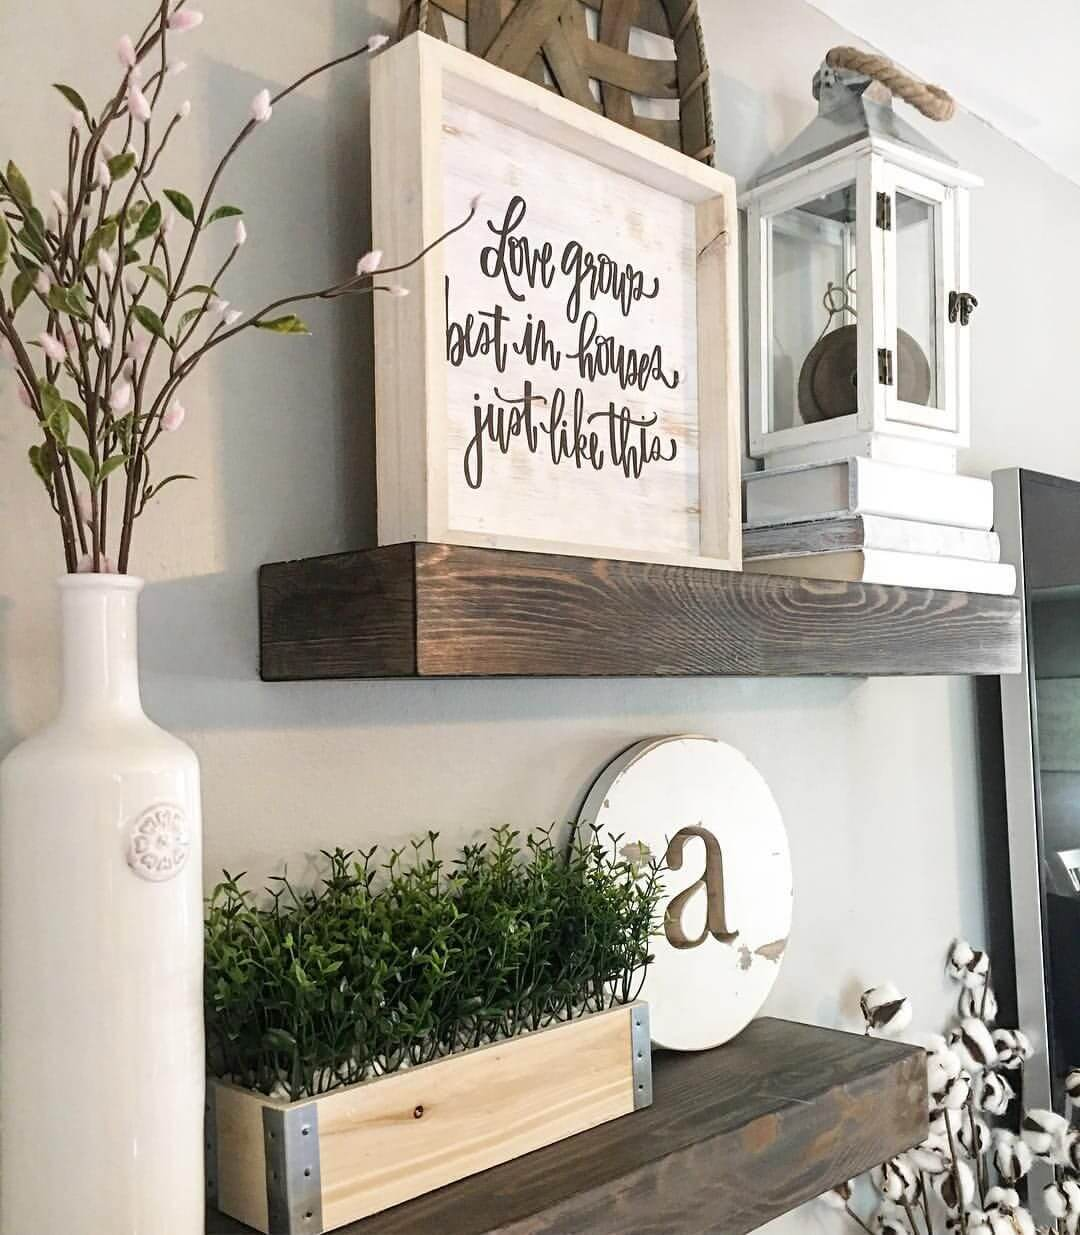 Kitchen Shelf Decor Ideas: 26 Best Farmhouse Shelf Decor Ideas And Designs For 2019